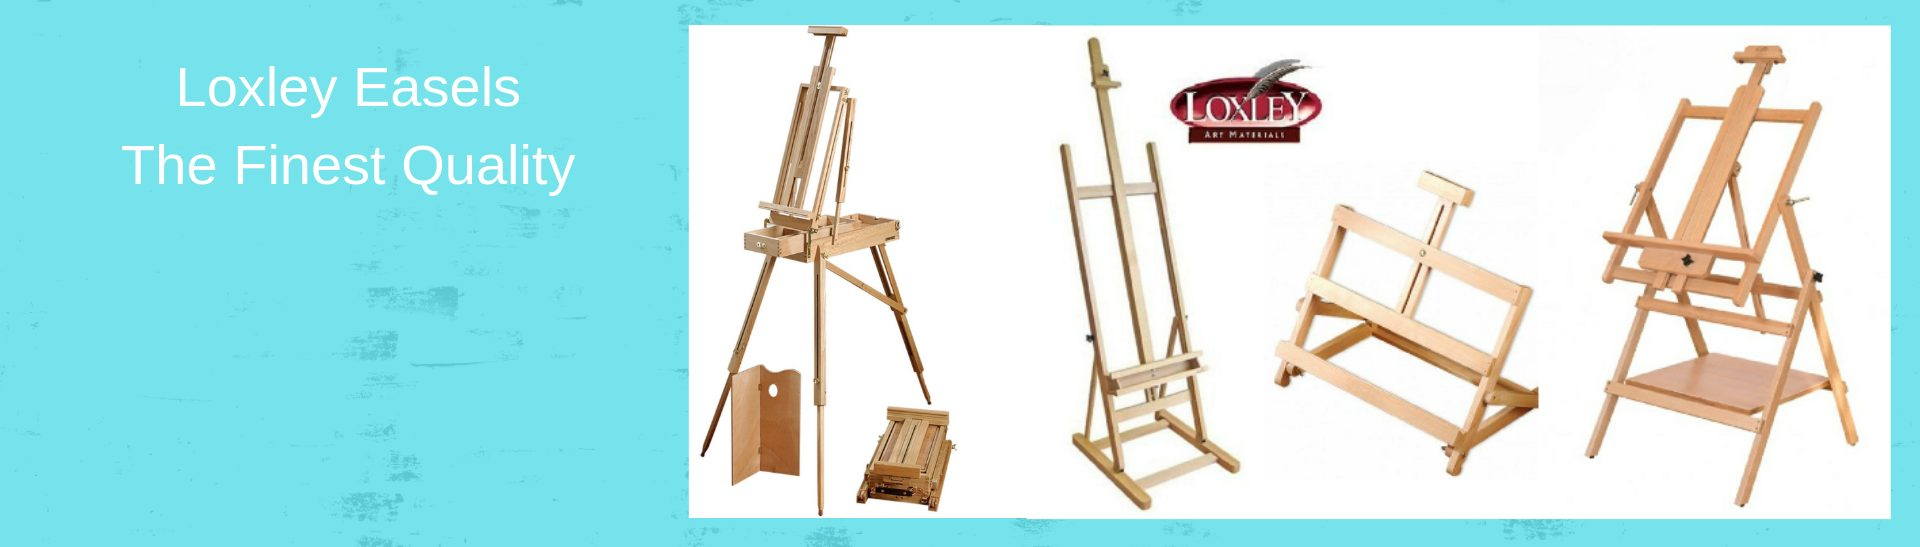 Loxley easels from £1.99